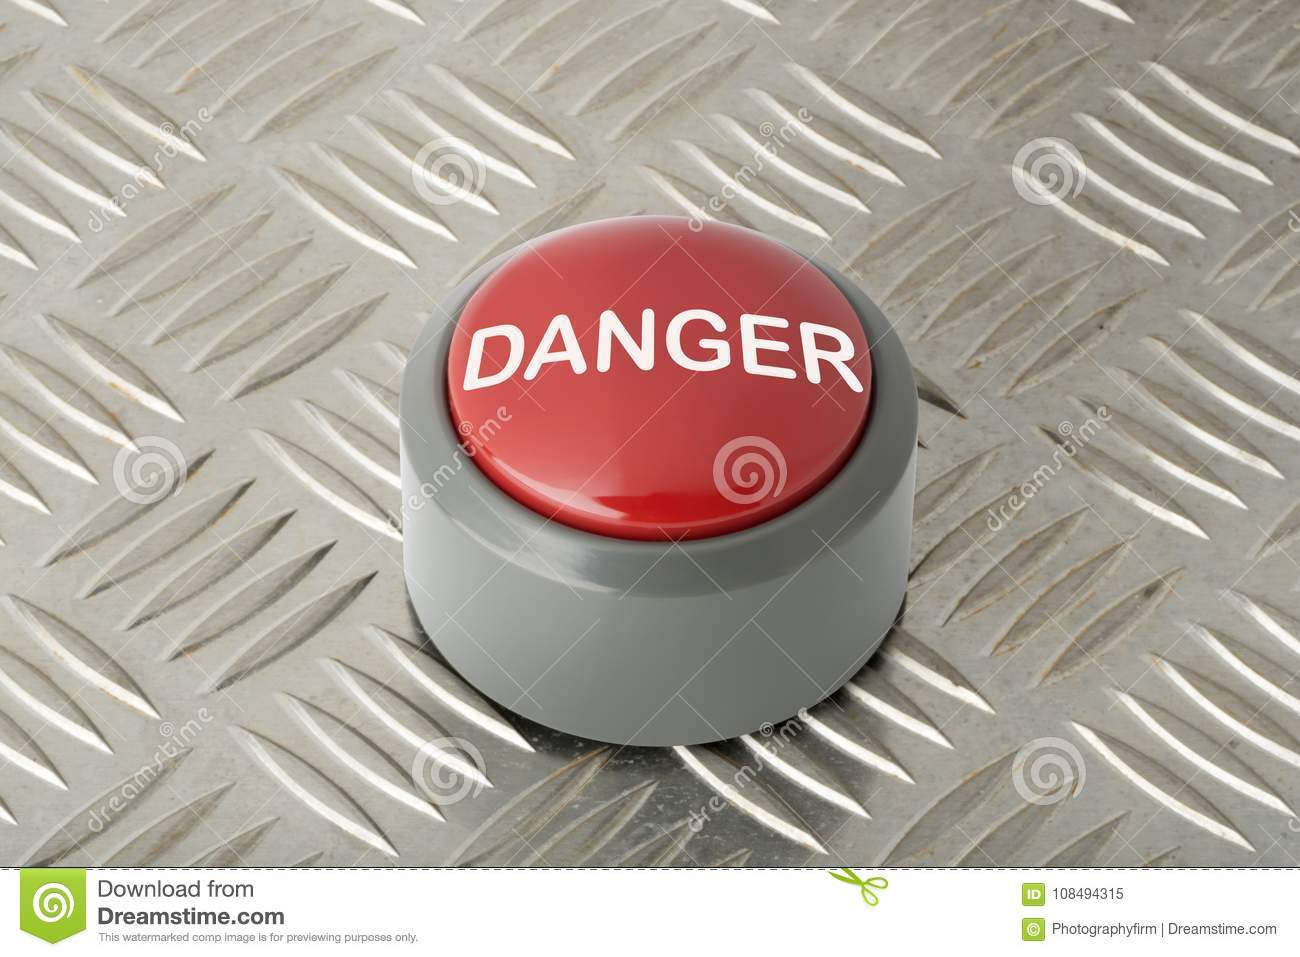 vector free sign royalty image diamond vectorstock danger